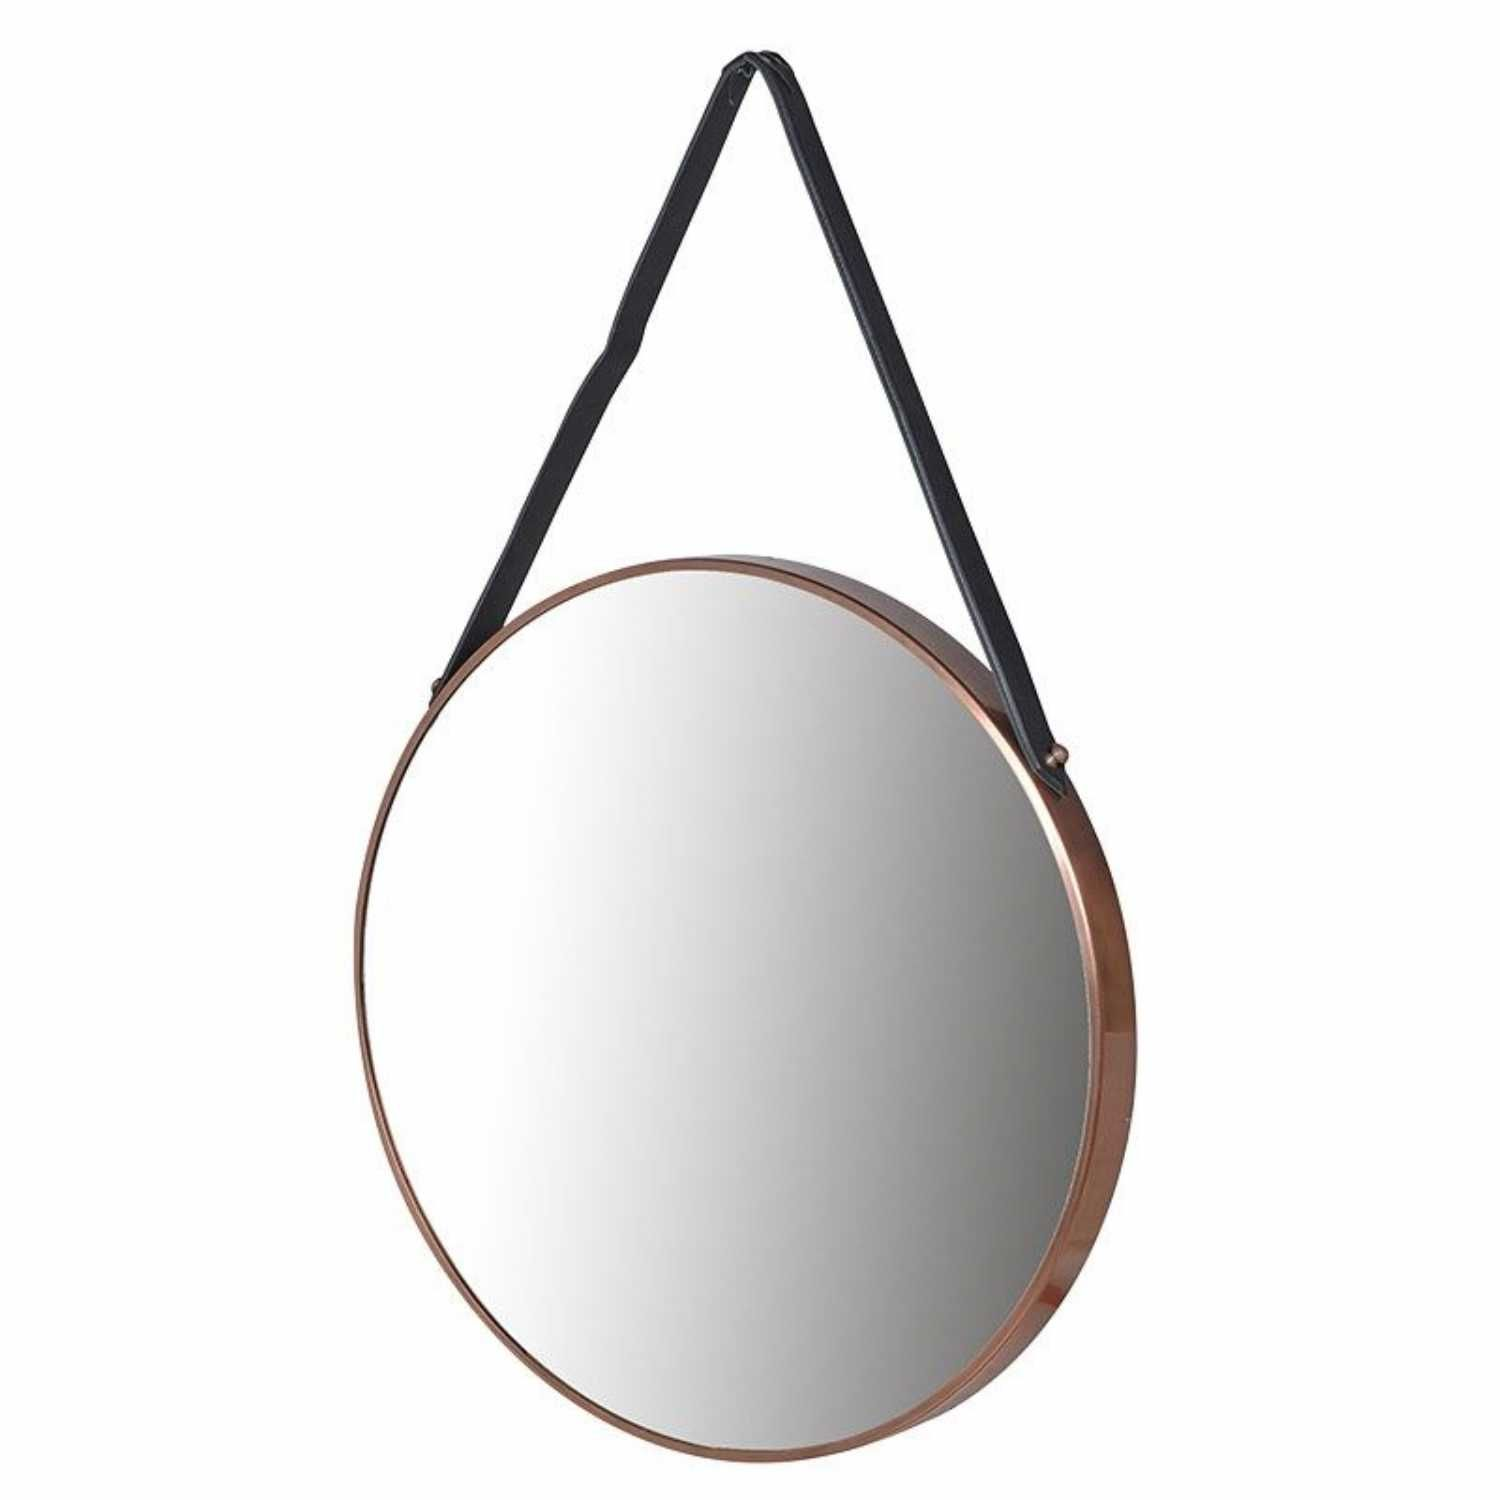 Large Round Copper Framed Wall Mirror With Leather Strap